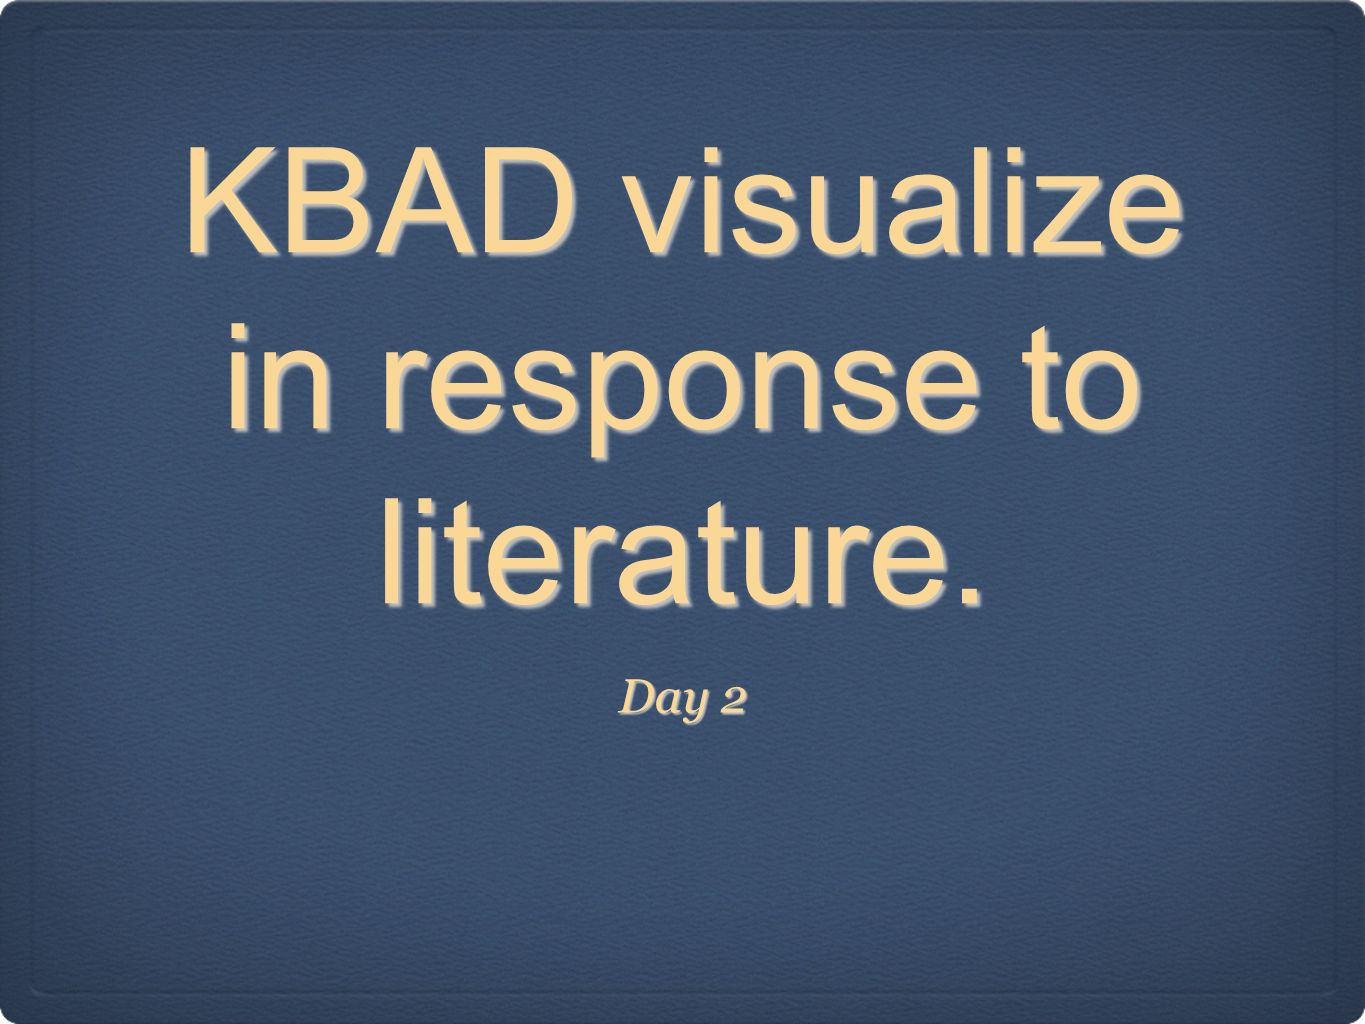 KBAD visualize in response to literature.